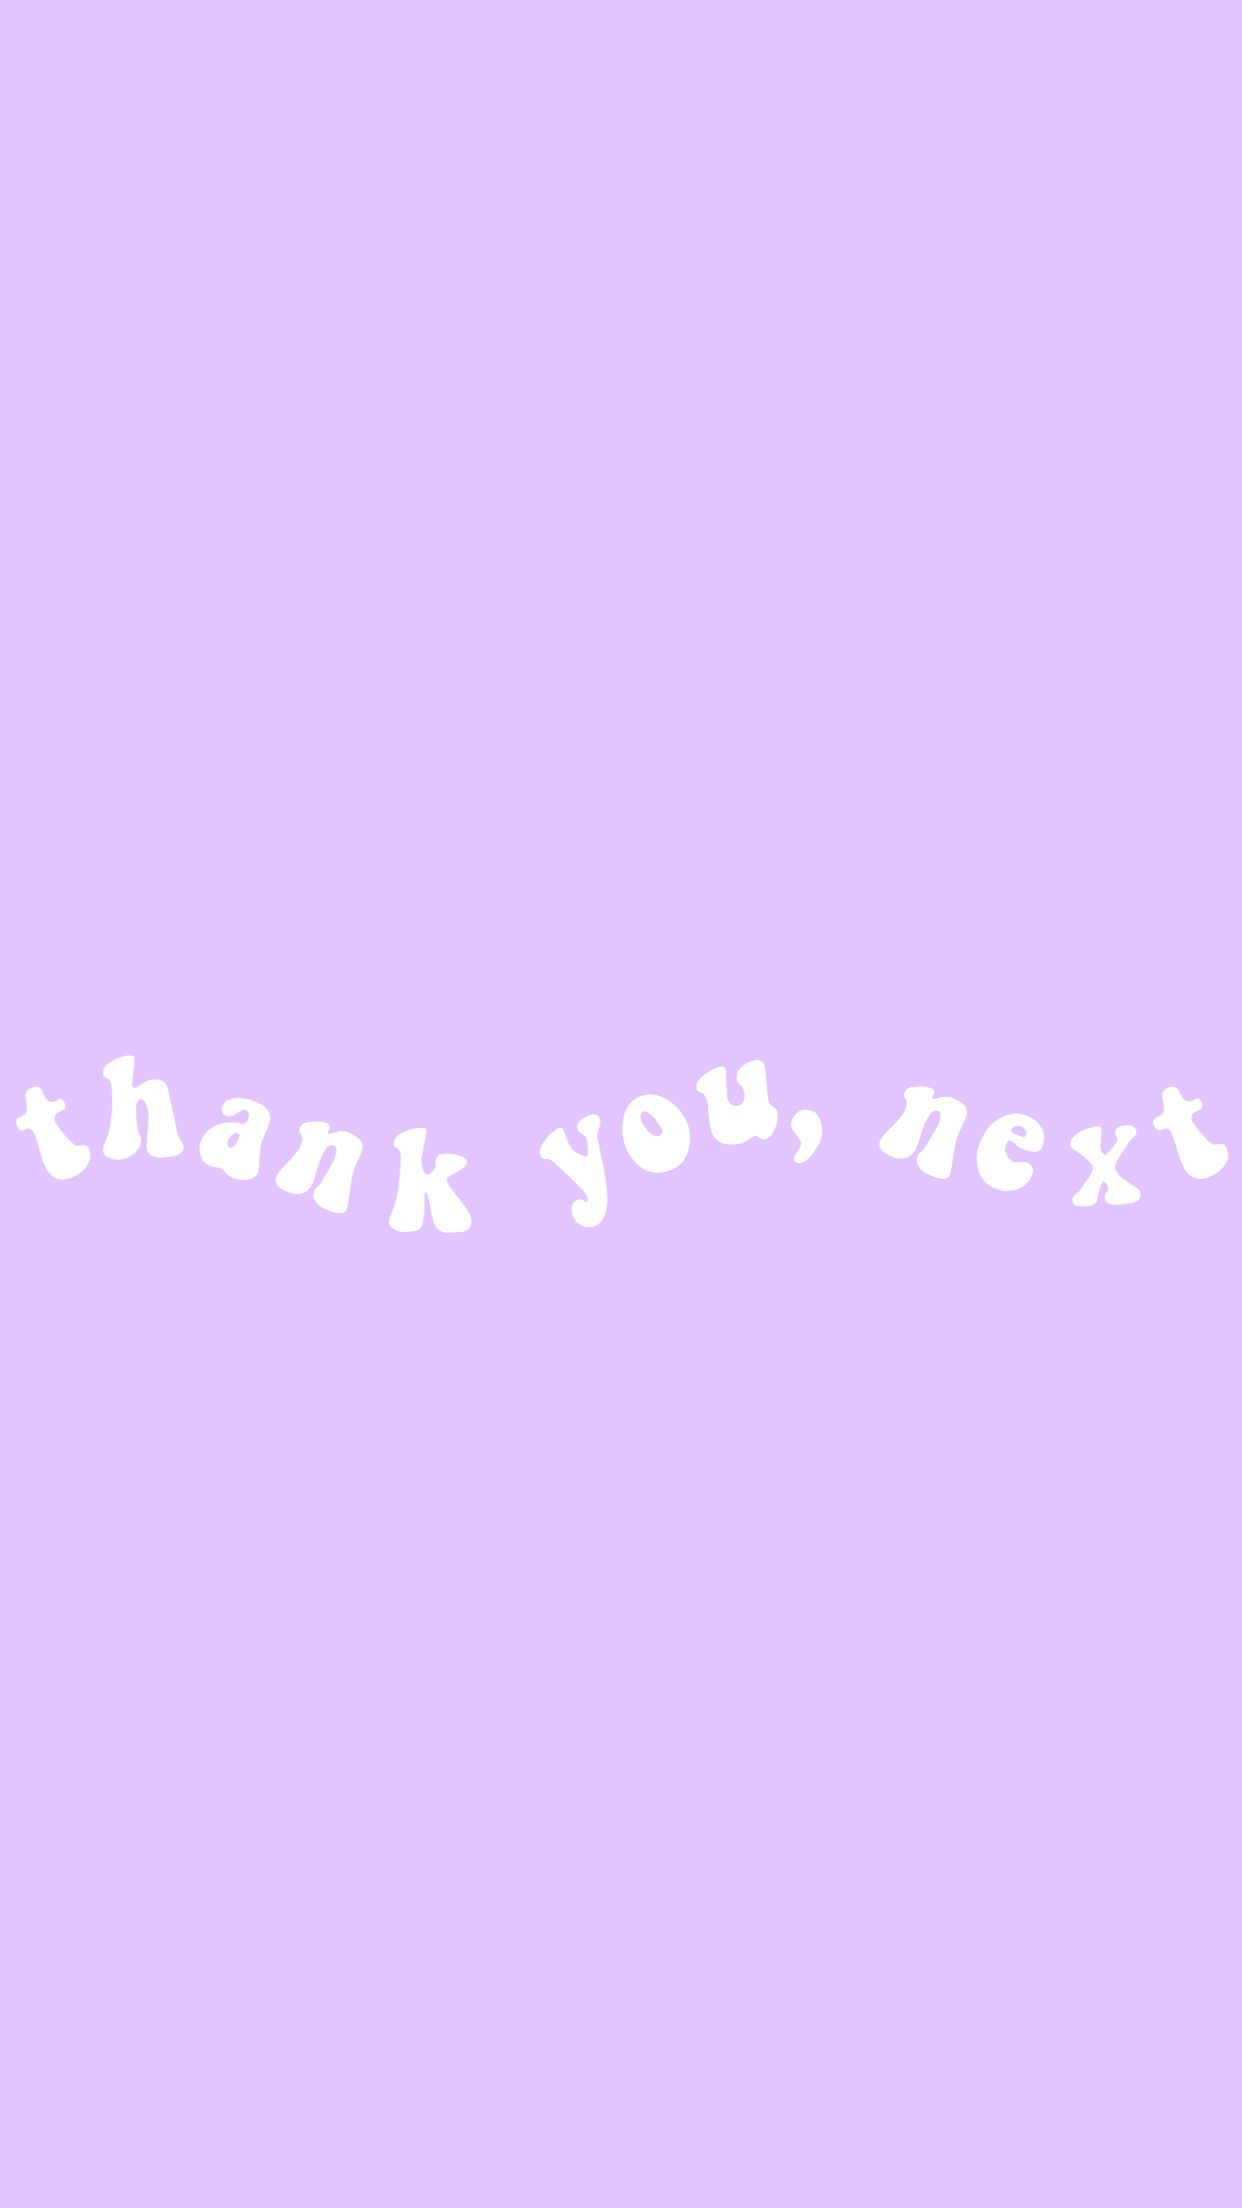 Thank You Next Purple Wallpaper Iphone Pink Wallpaper Iphone Purple Wallpaper